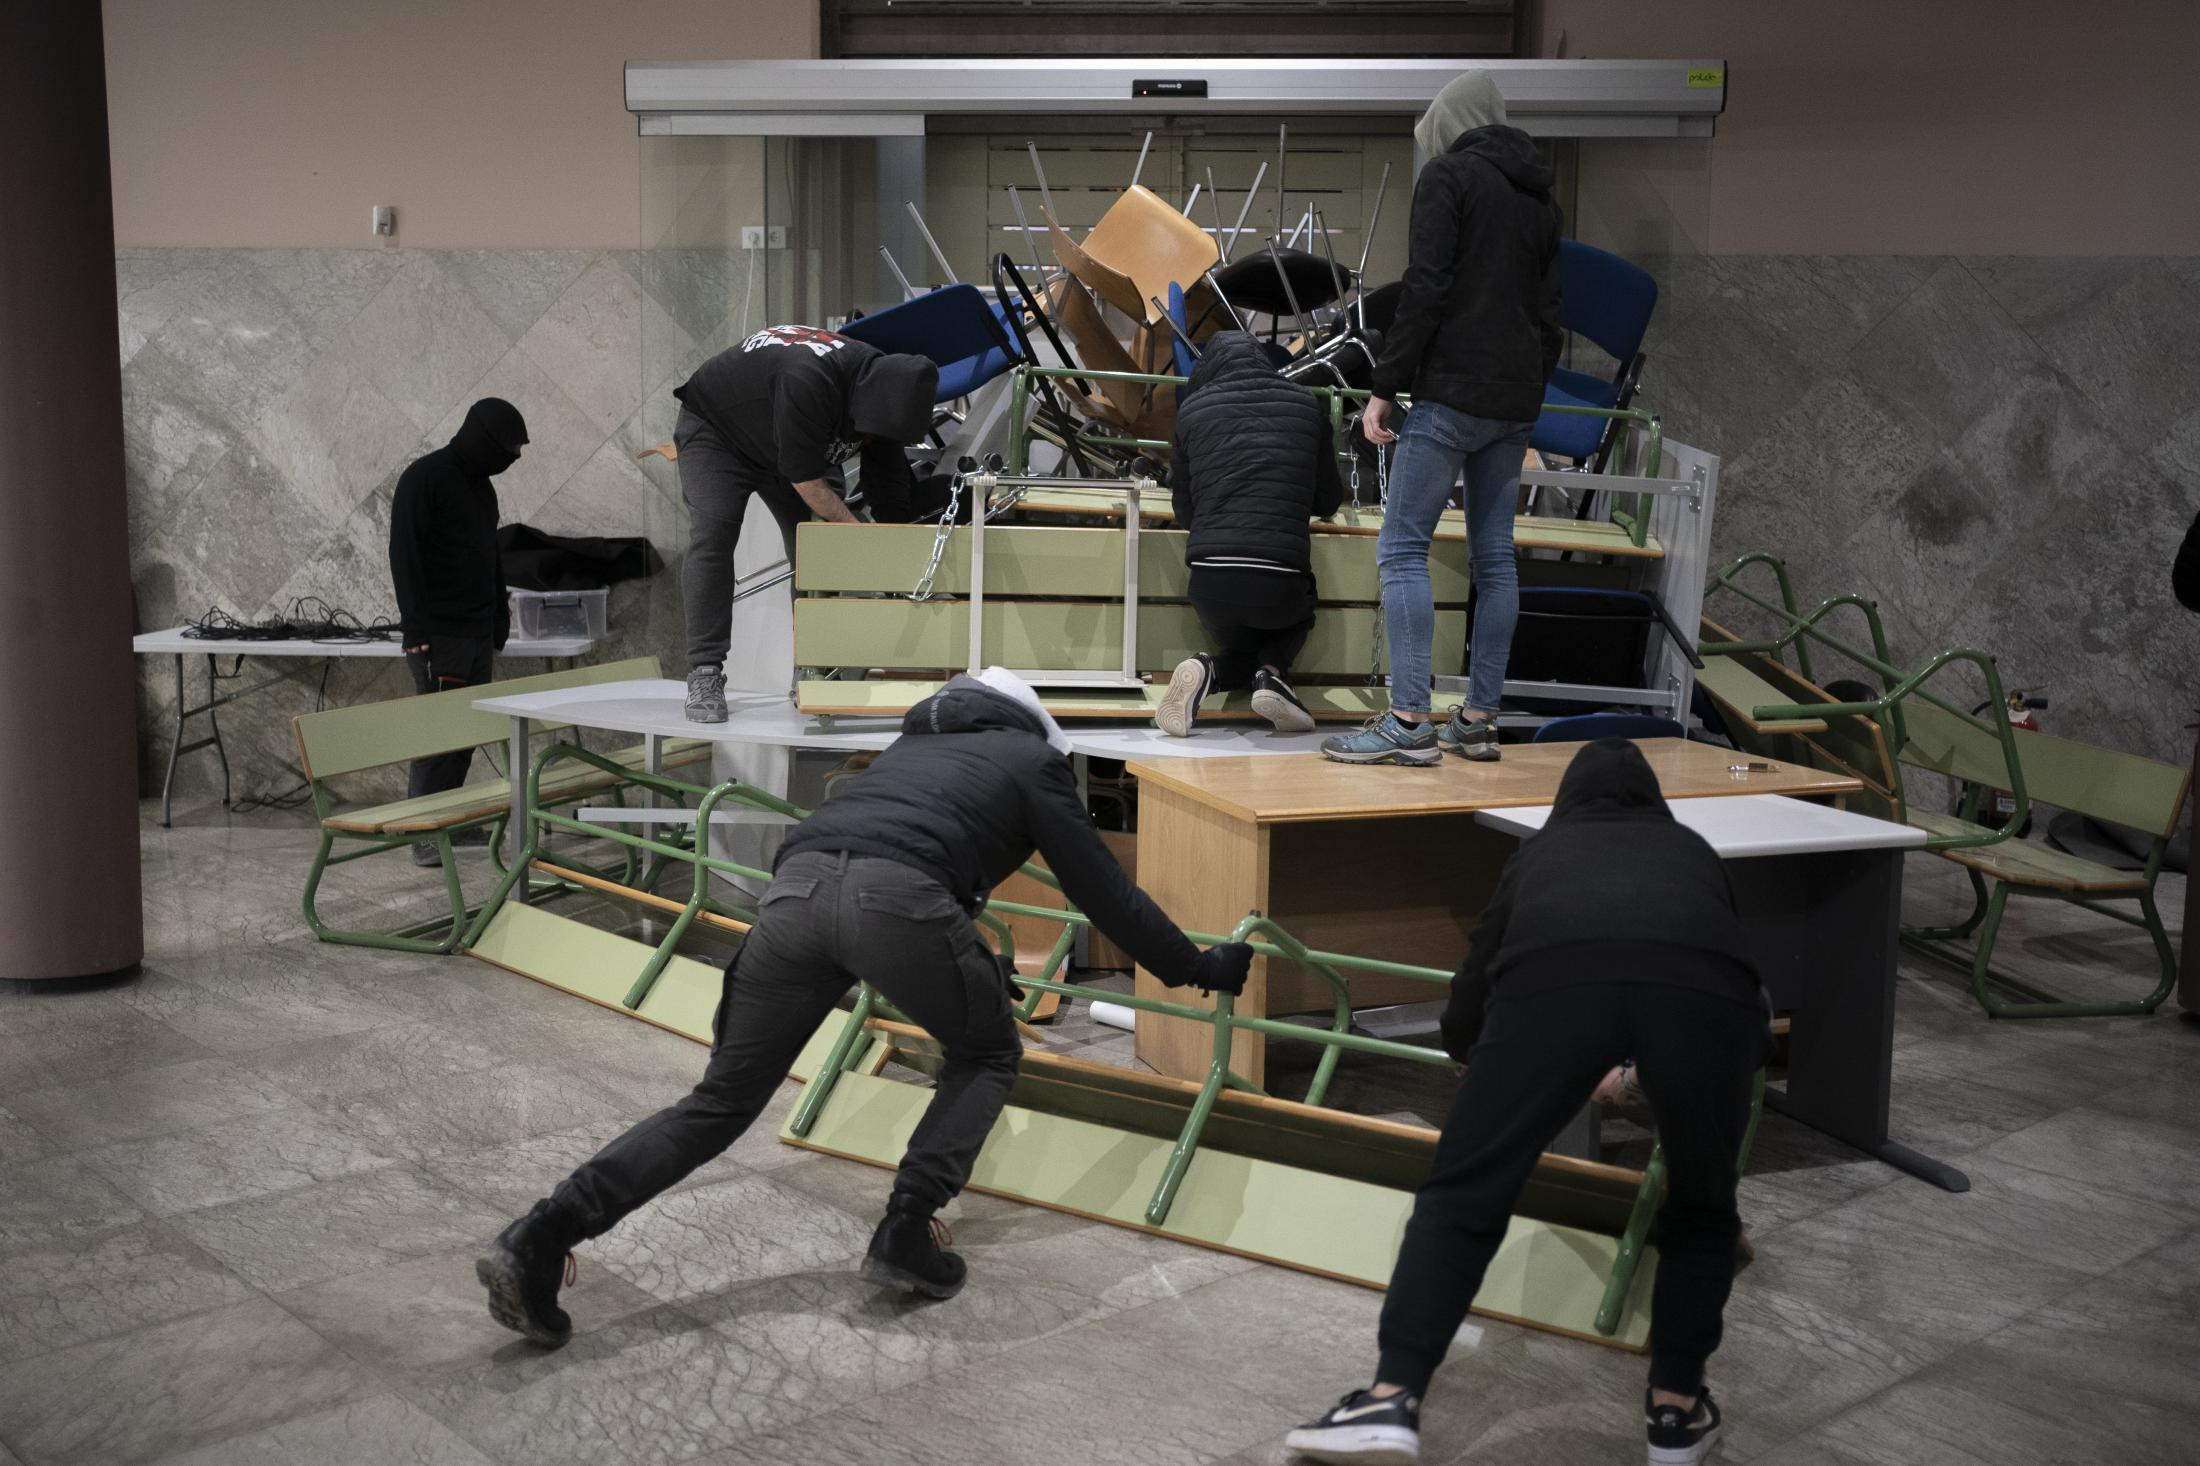 upporters of rap singer Pablo Hasel make barricades inside the University of Lleida, Spain, Monday, Feb. 15, 2021. The imprisonment of Pablo Hasel for inciting terrorism and refusing to pay a fine after having insulted the country's monarch has triggered a social debate and street protests. (AP Photo/Joan Mateu)